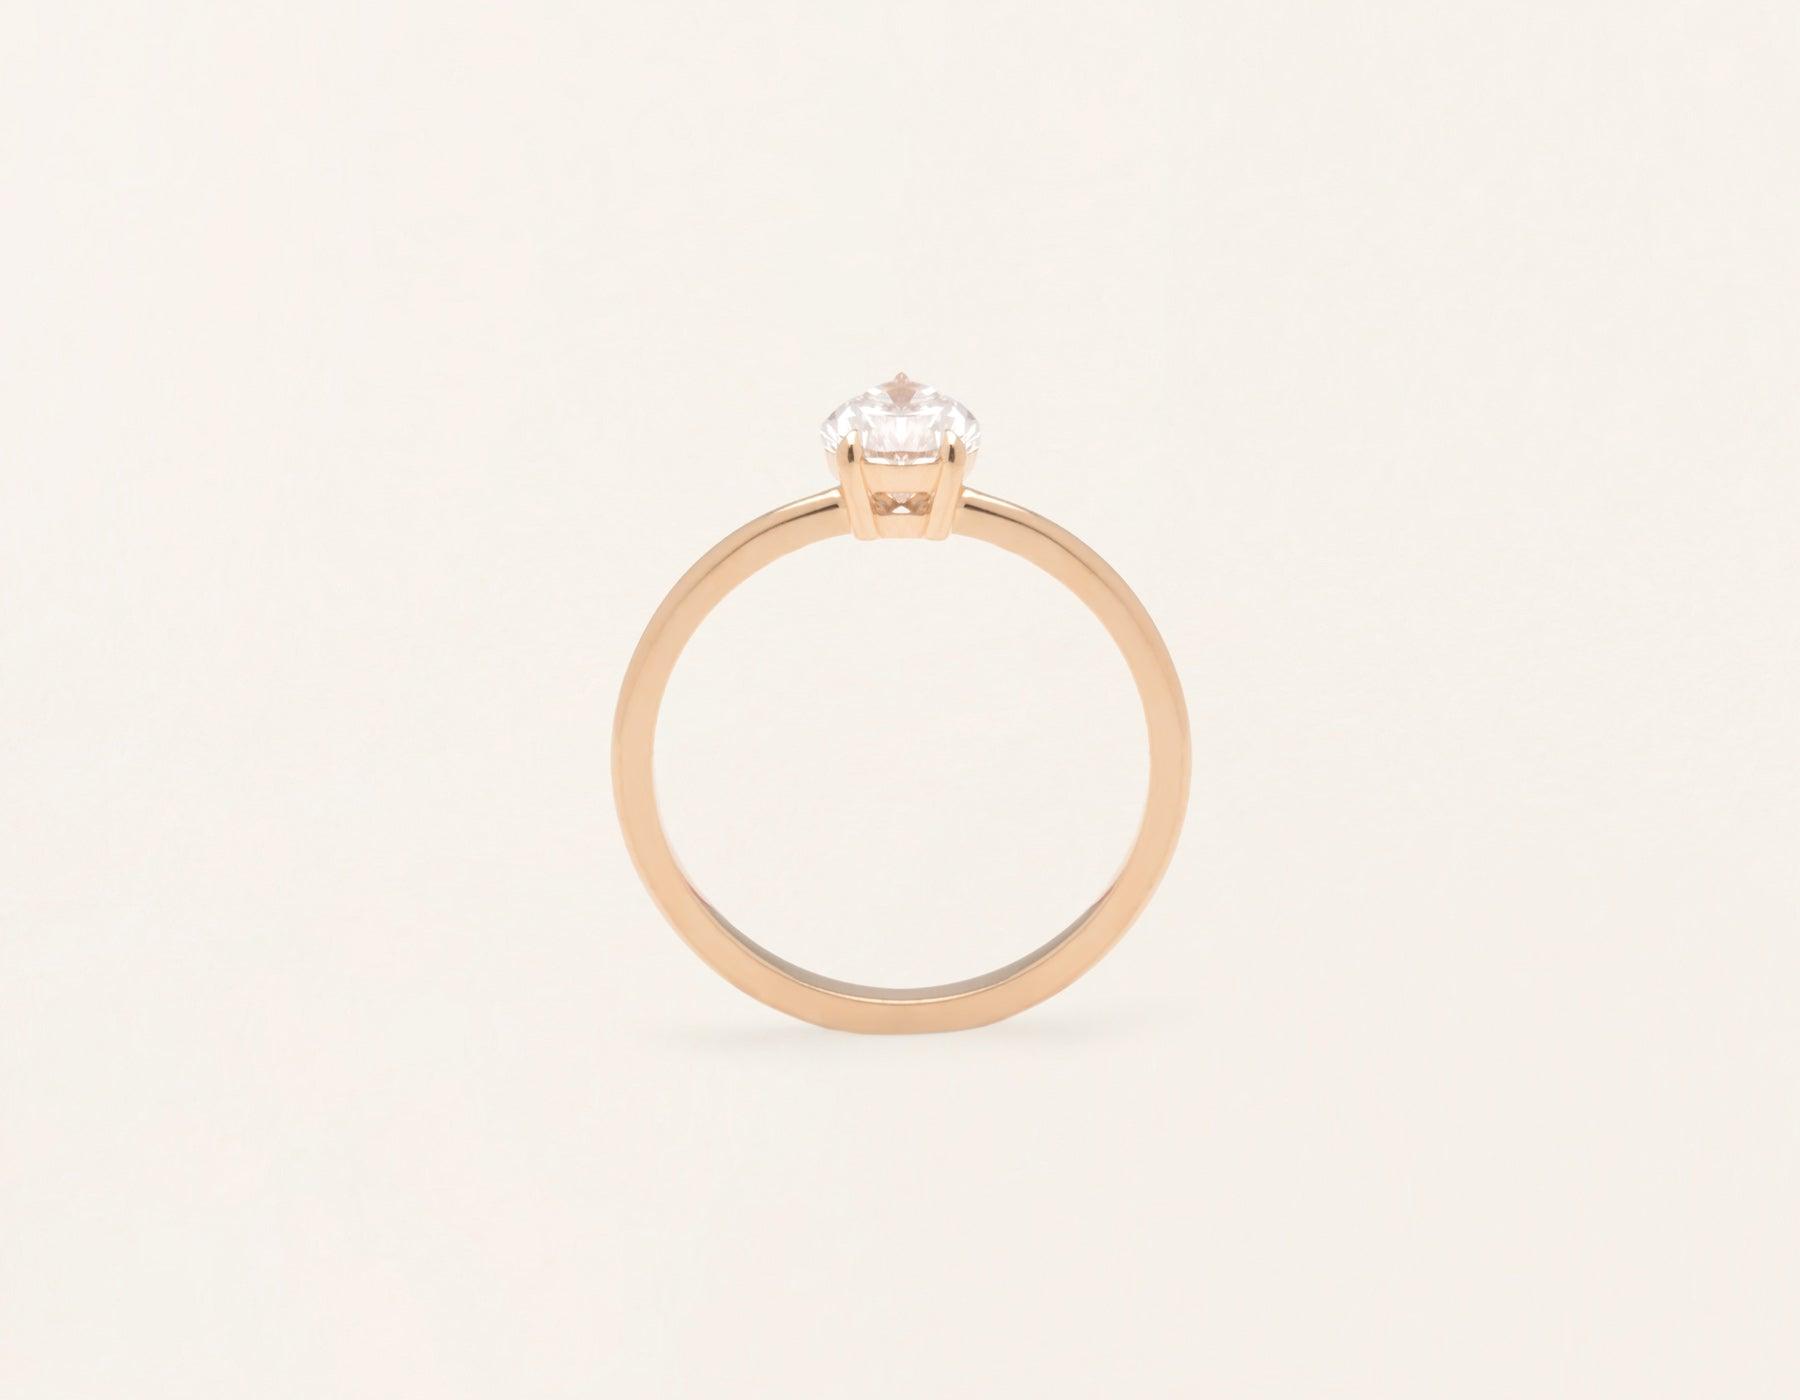 Vrai and Oro modern classic The pear diamond engagement ring 18k solid rose gold sustainable jewelry